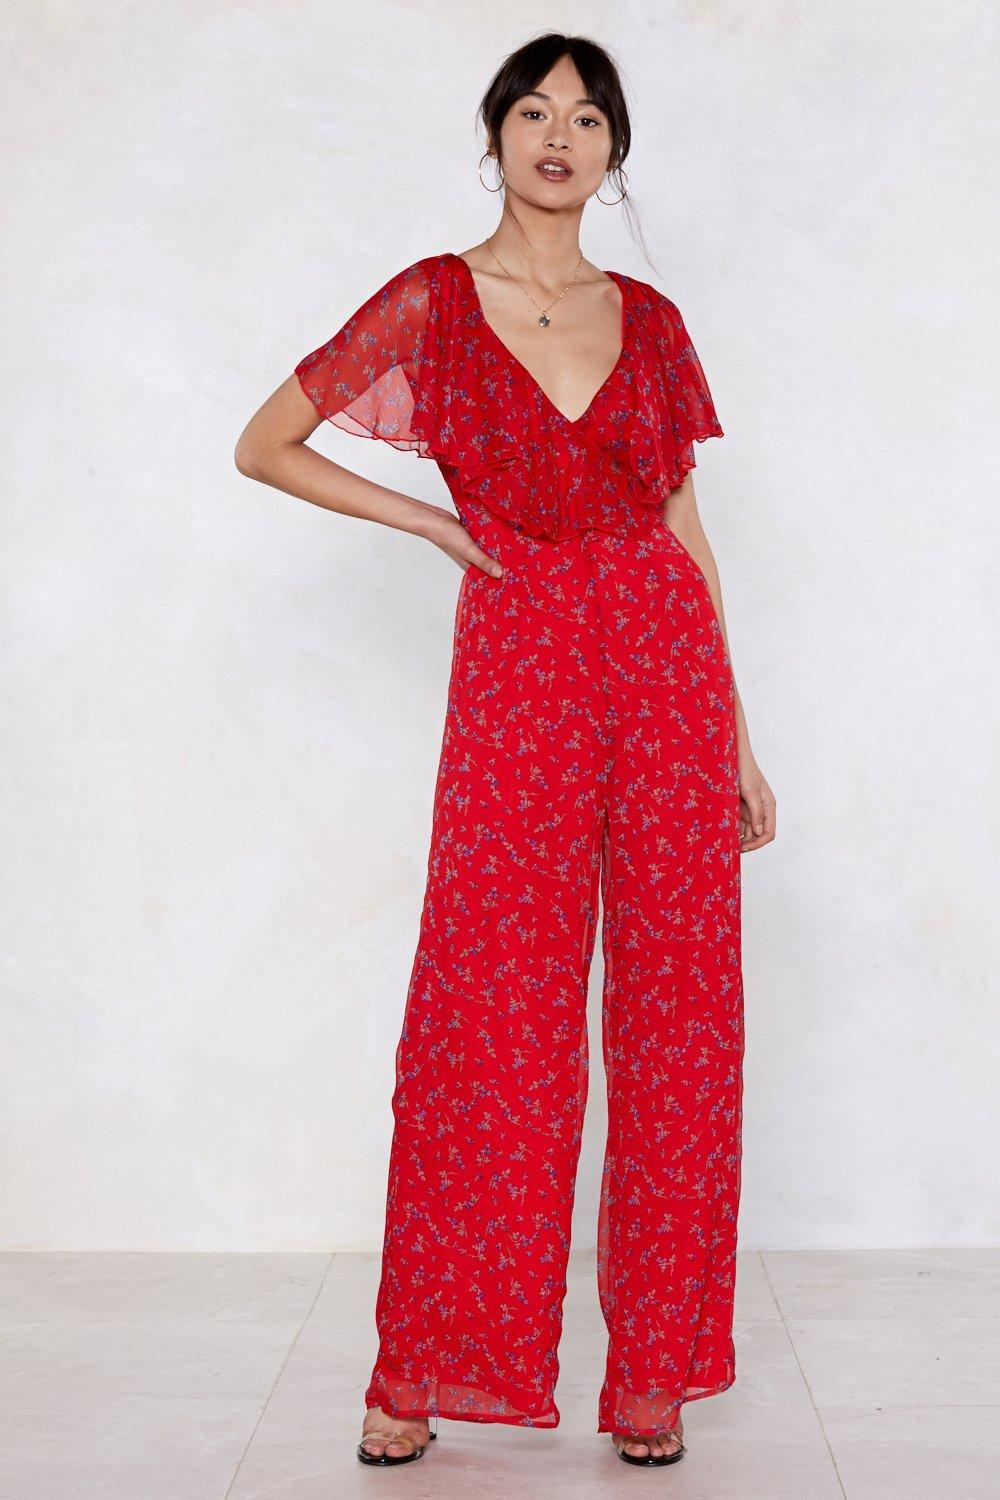 773a6594f7f0 Kick Some Bud Floral Jumpsuit | Shop Clothes at Nasty Gal!